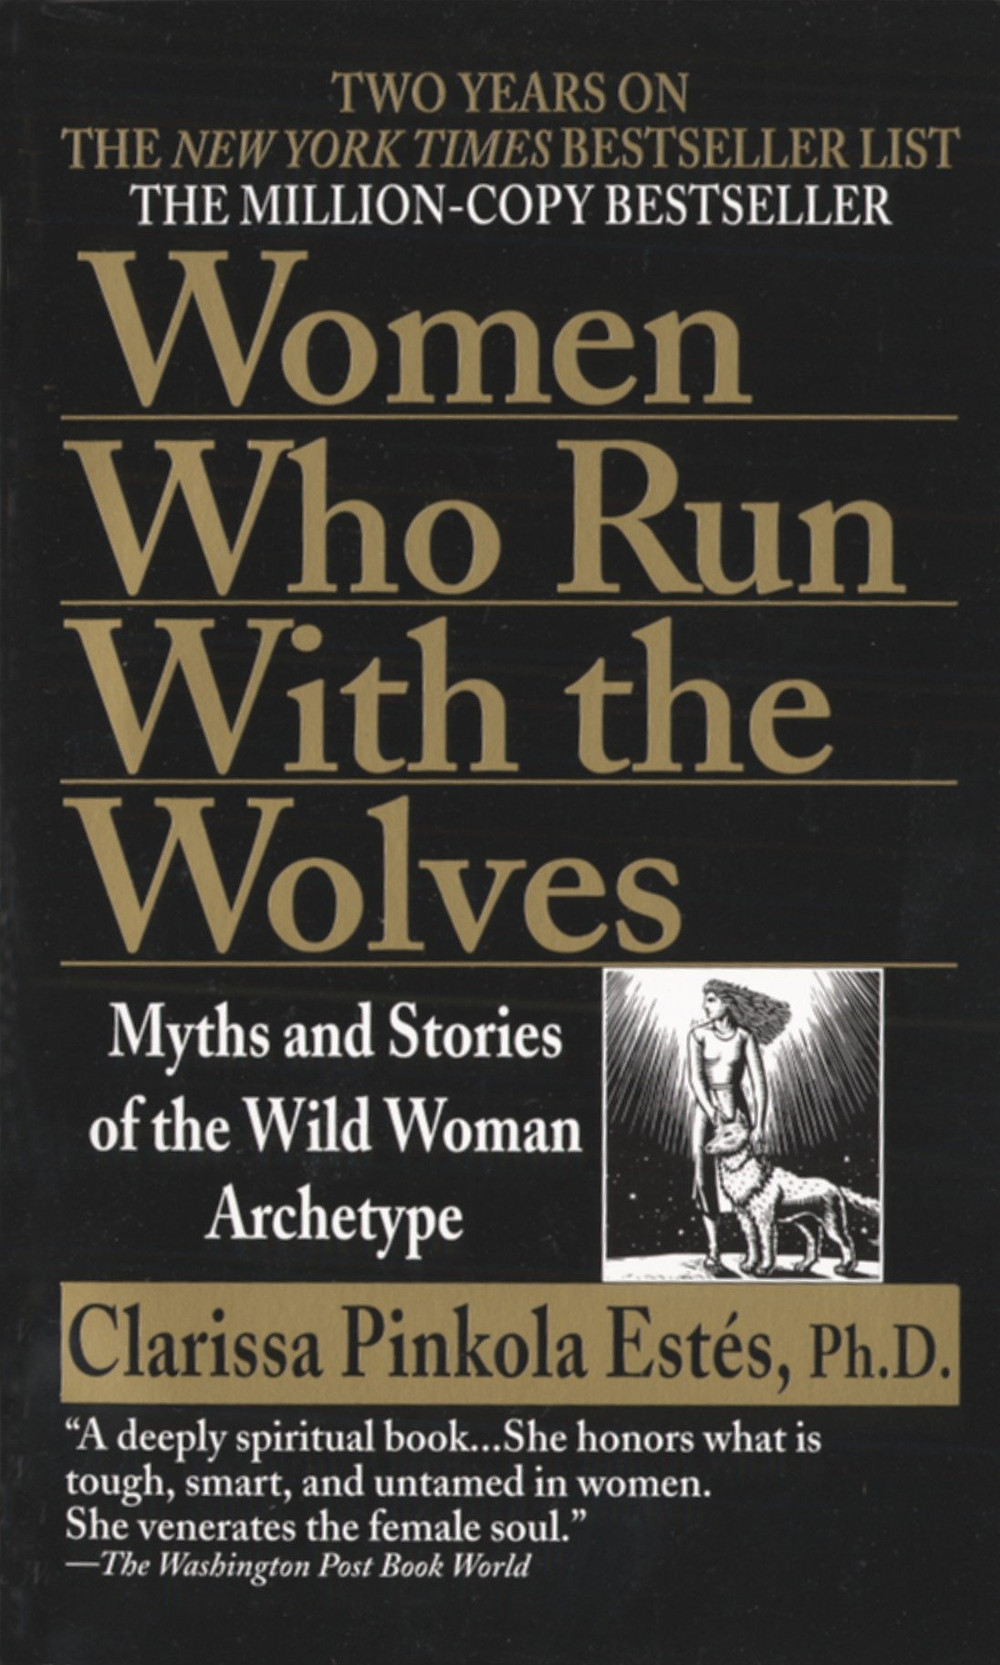 Women Who Run with the Wolves book gift for witches